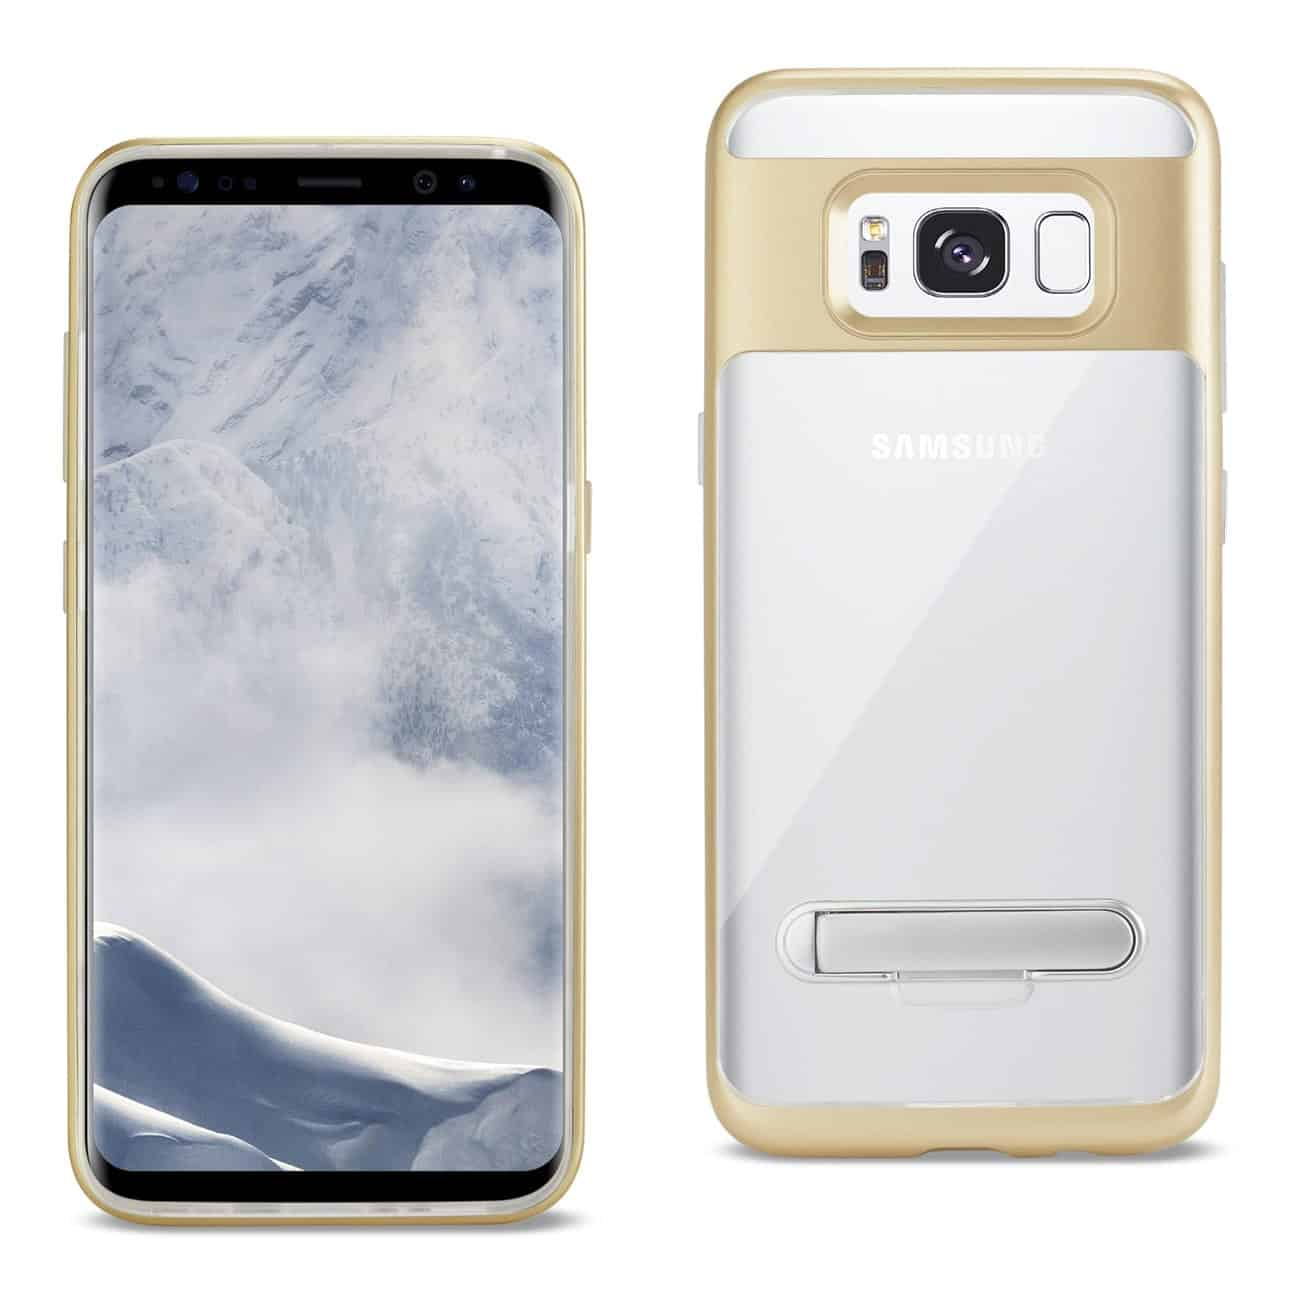 SAMSUNG GALAXY S8 EDGE/ S8 PLUS TRANSPRANT BUMPER CASE WITH KICKSTAND IN CLEAR GOLD